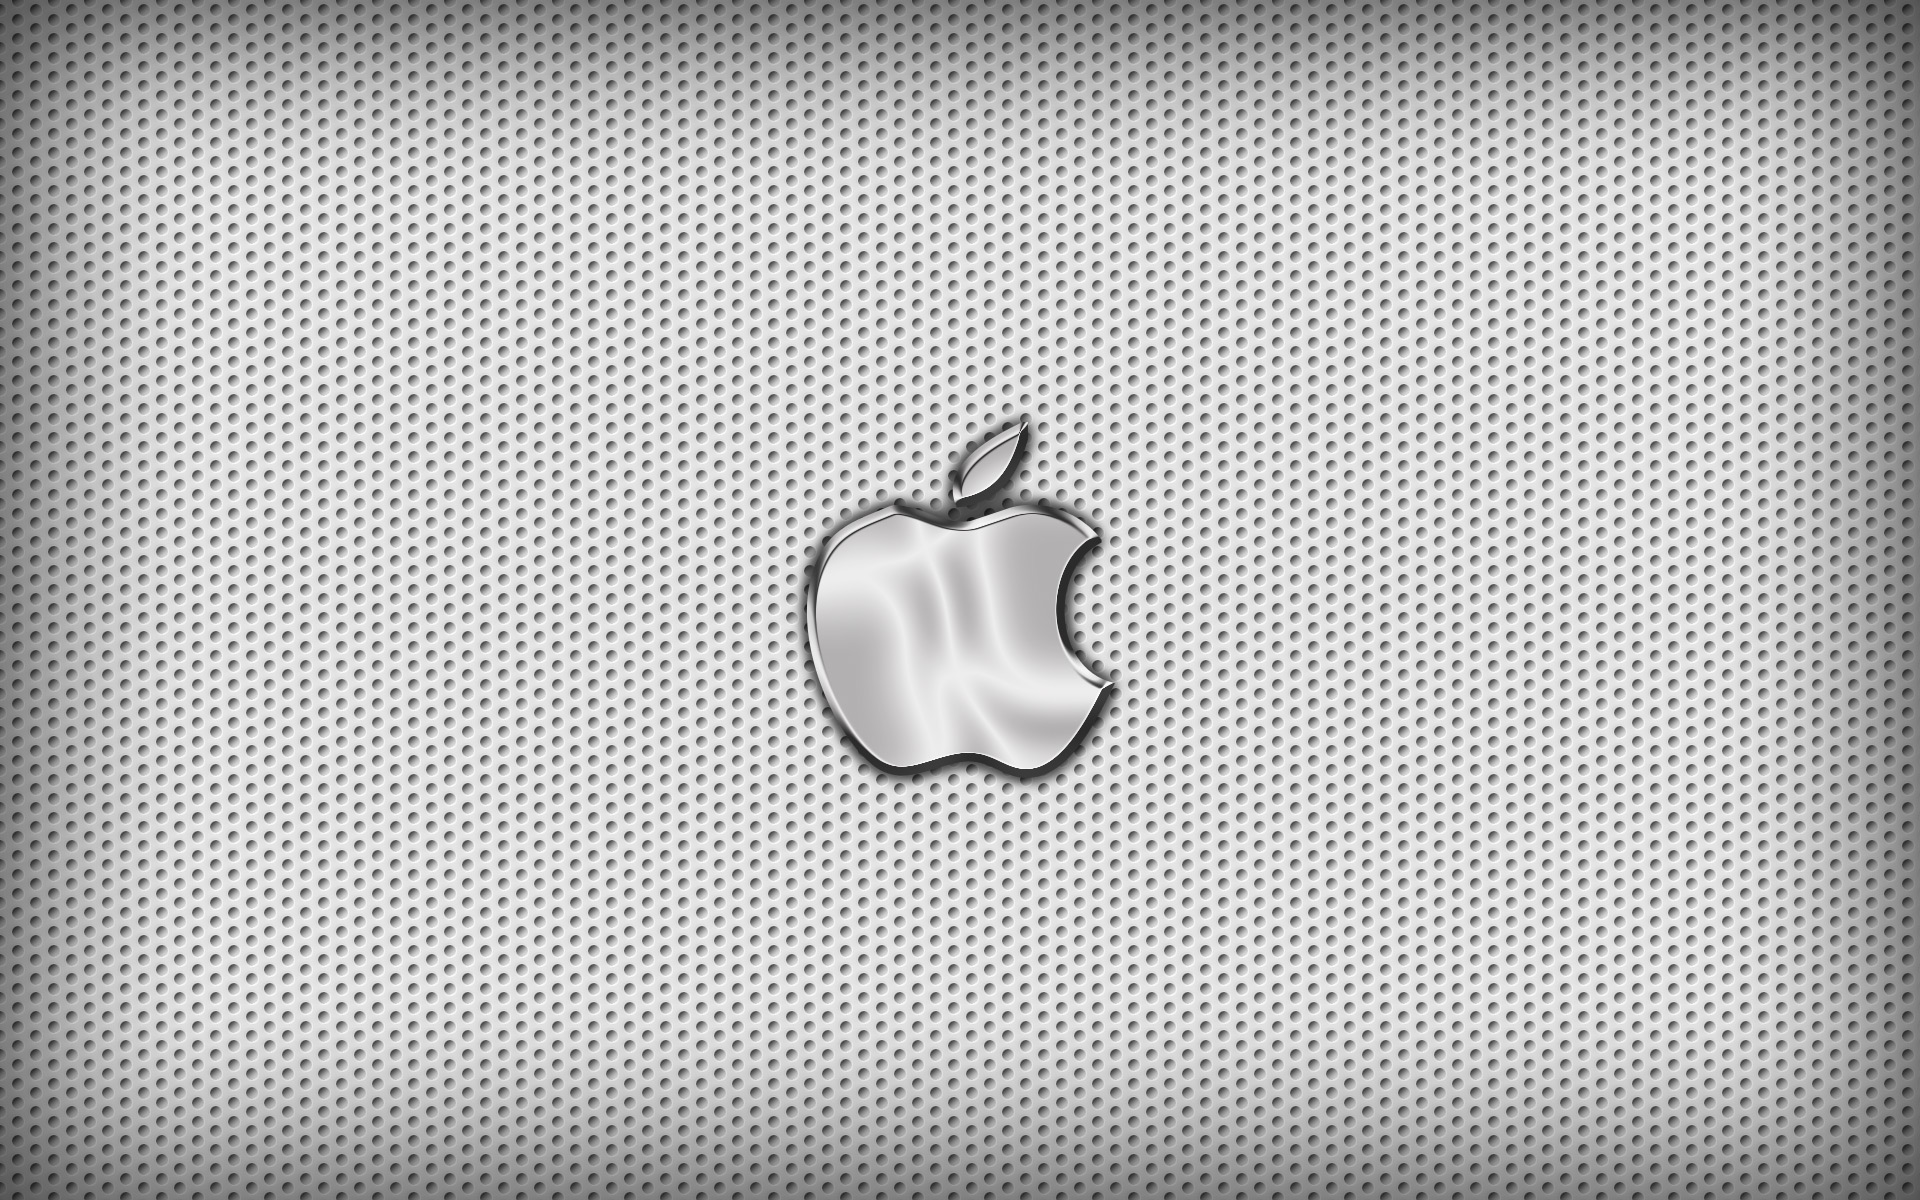 50 Mac Wallpapersbackgrounds In Hd For Free Download